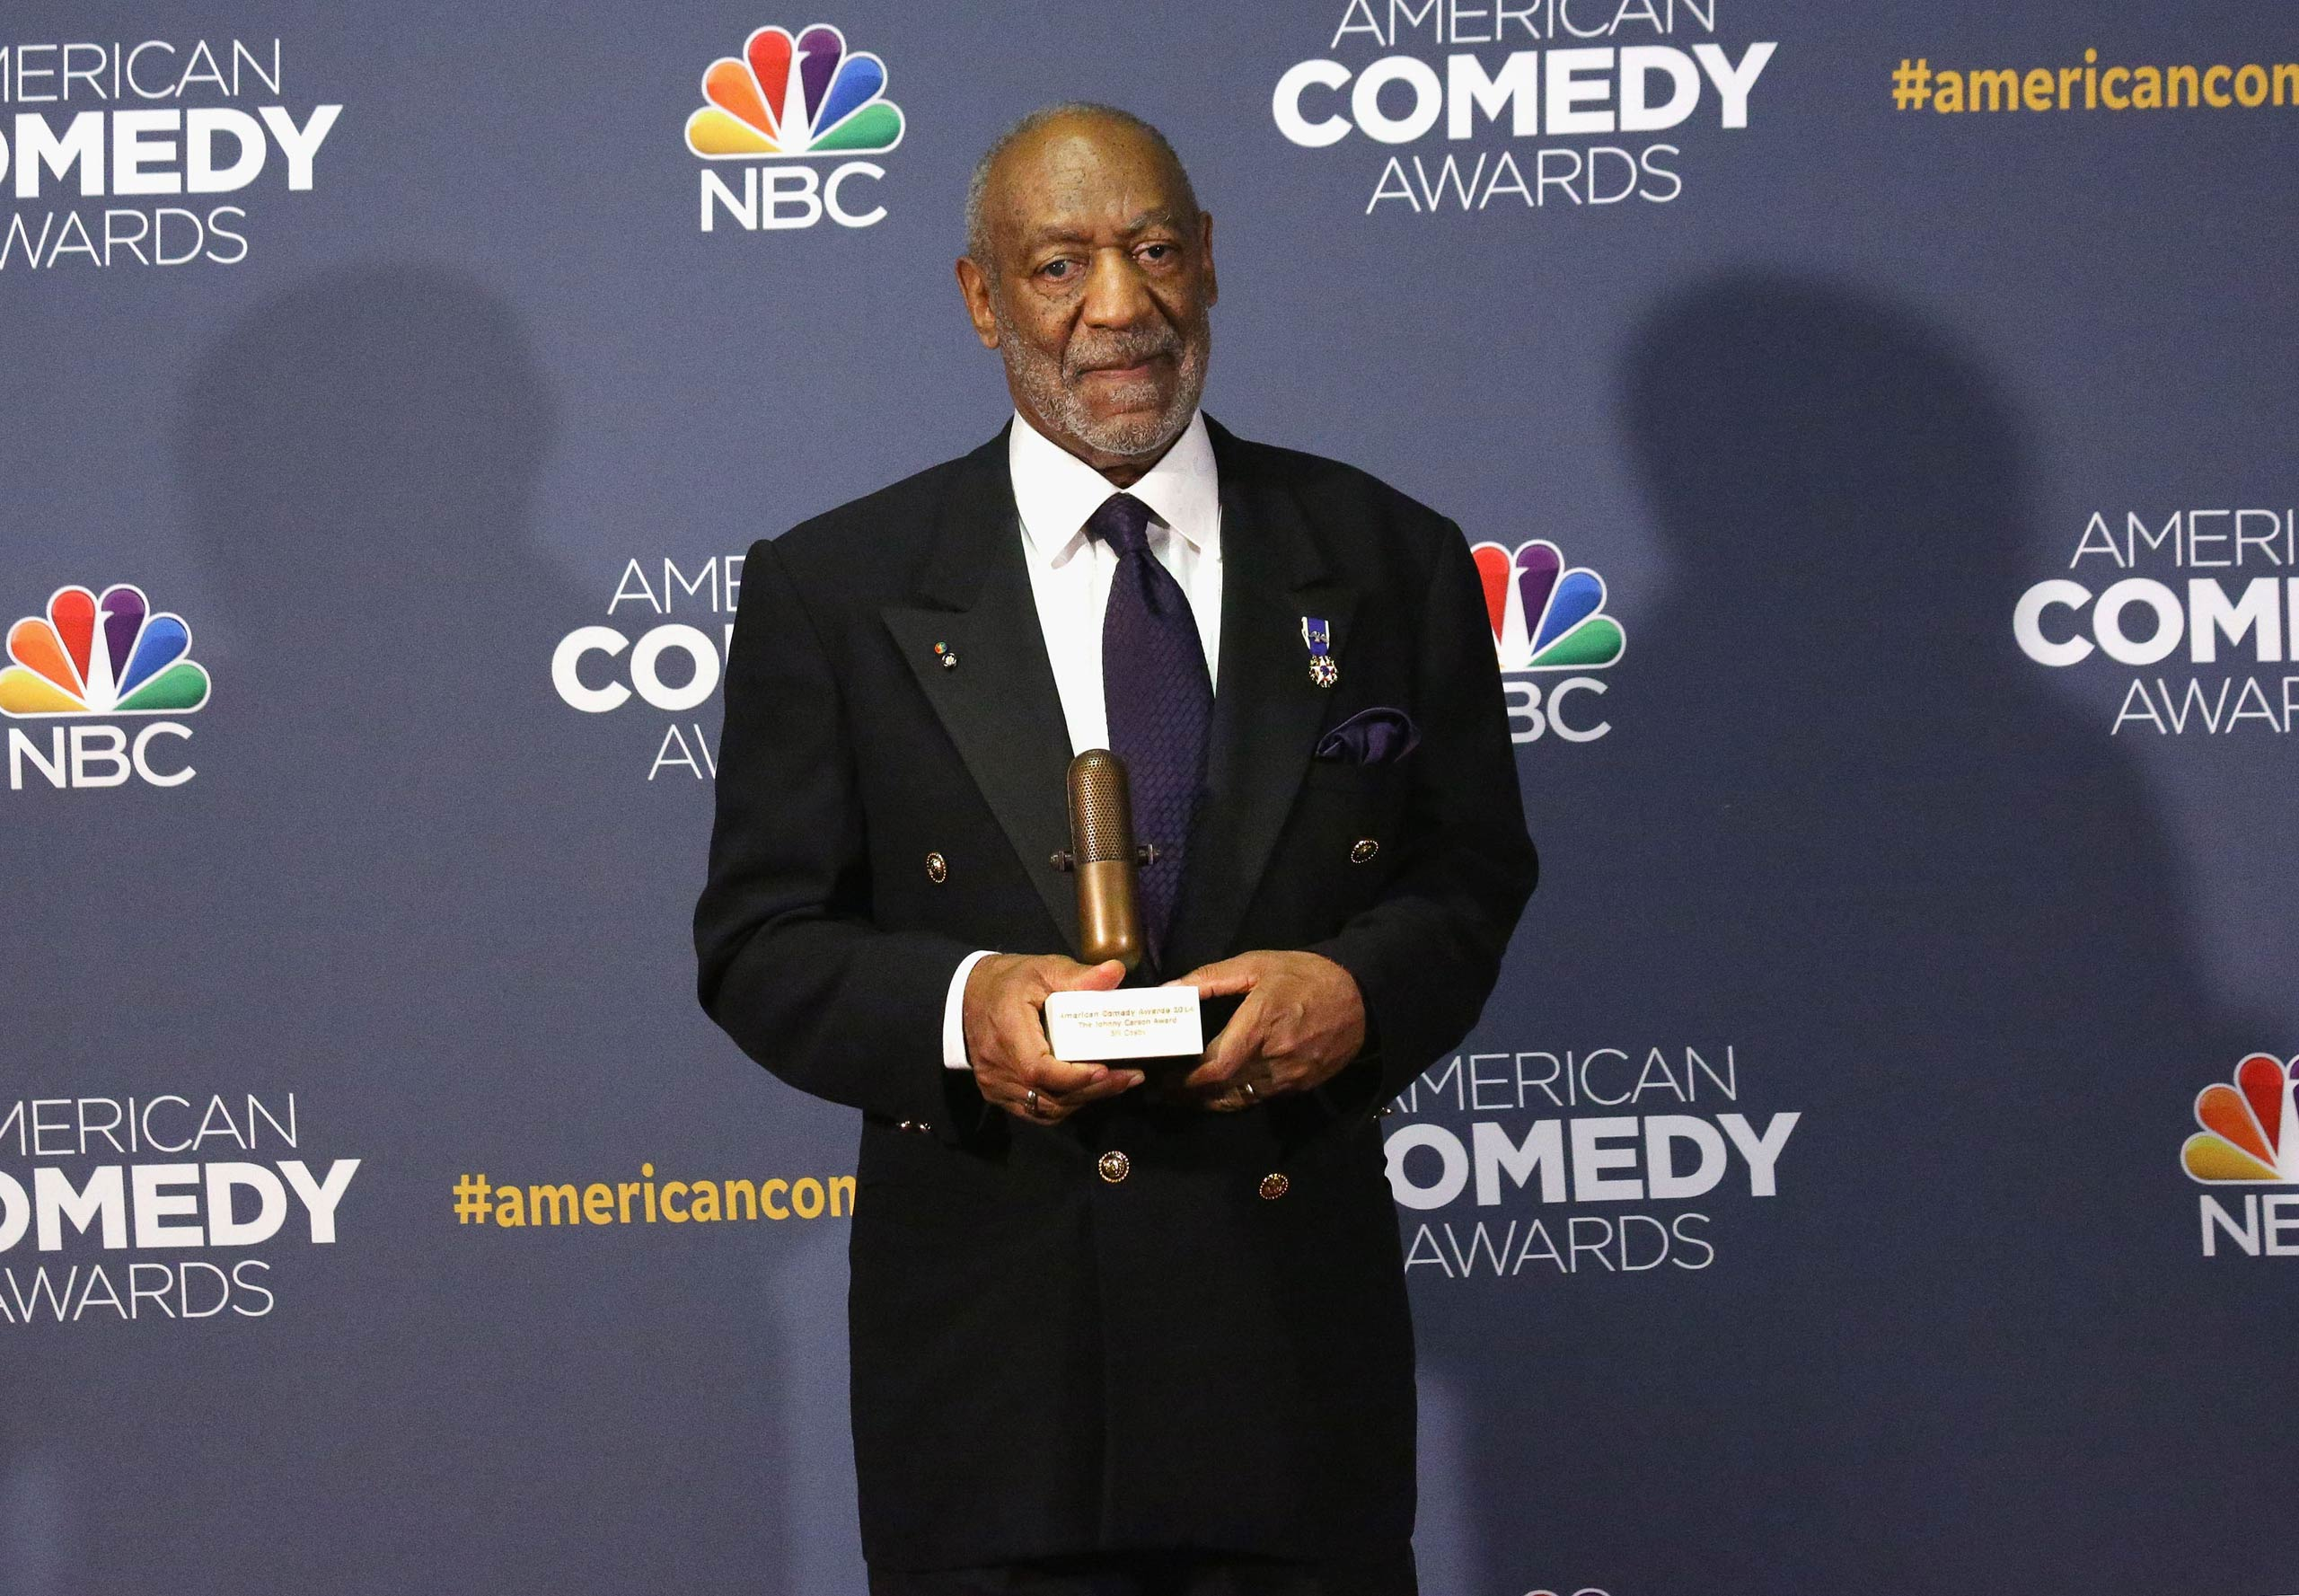 Bill Cosby attends the 2014 American Comedy Awards at Hammerstein Ballroom on April 26, 2014 in New York City.